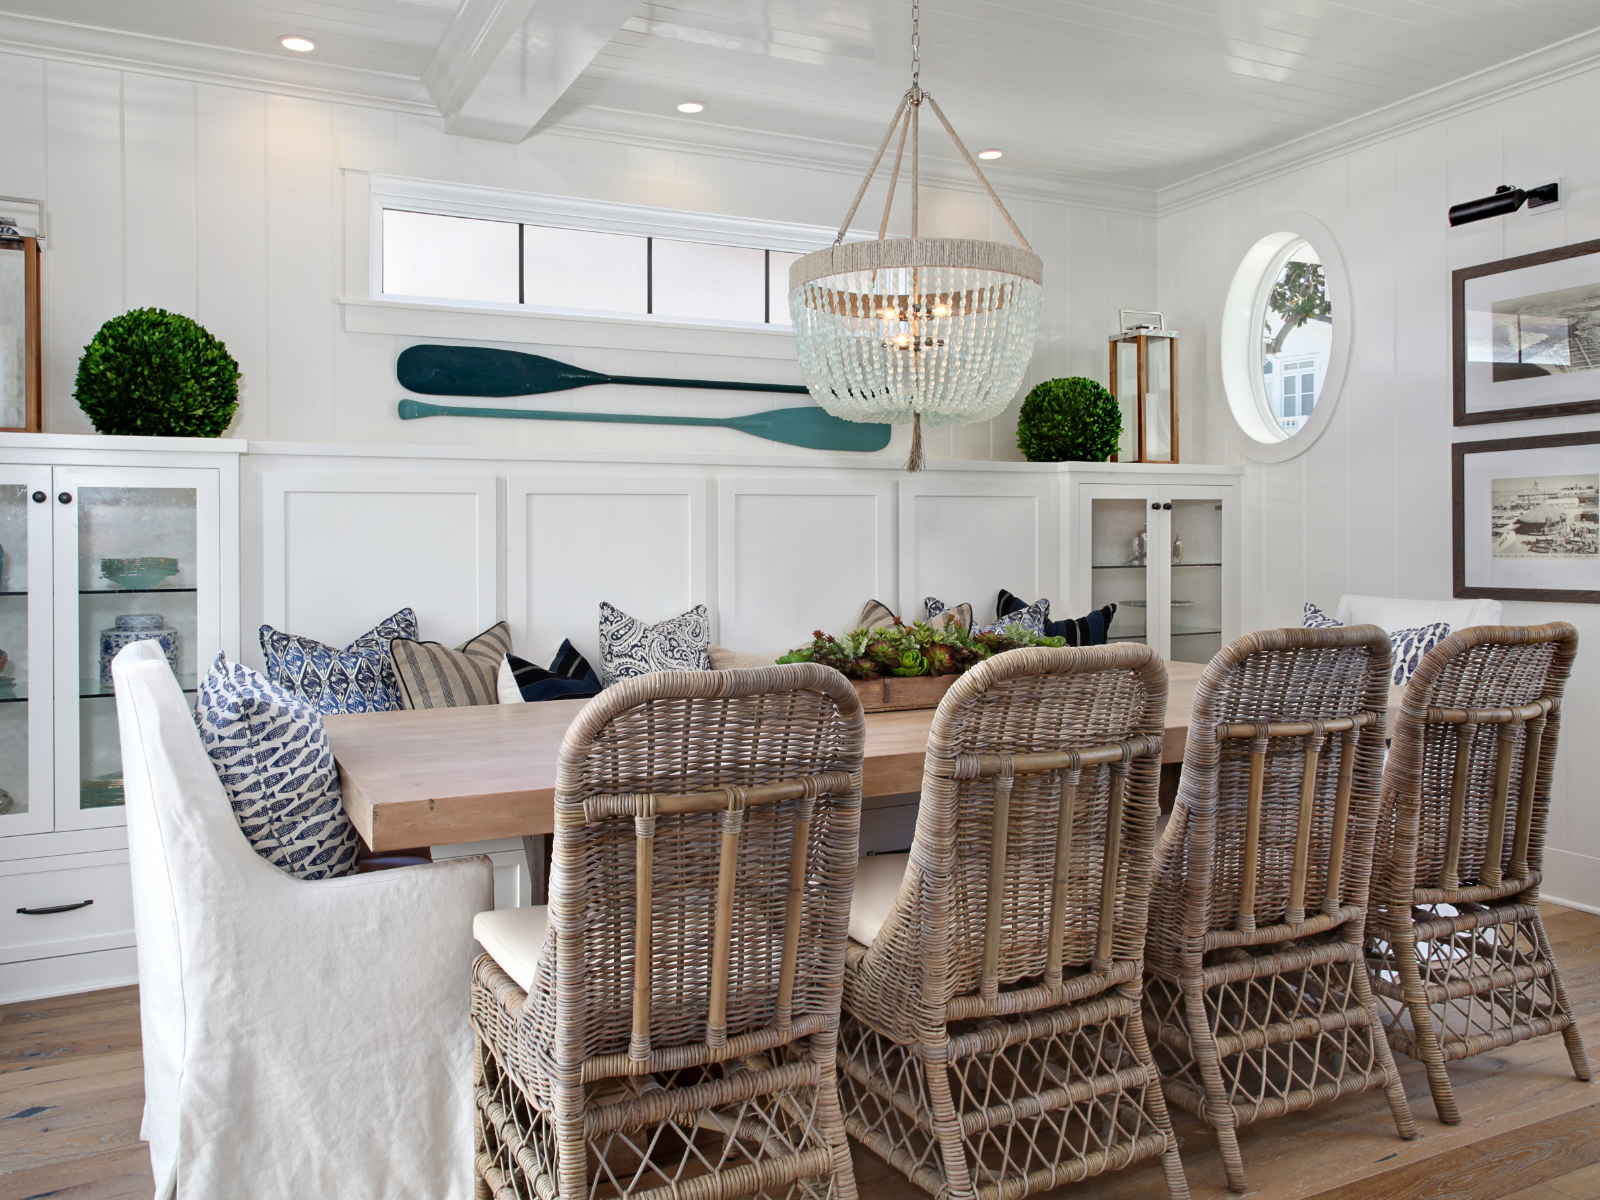 BLACKBAND_DESIGN_INTERIORS_PENINSULA_POINT_NEWPORT_BEACH